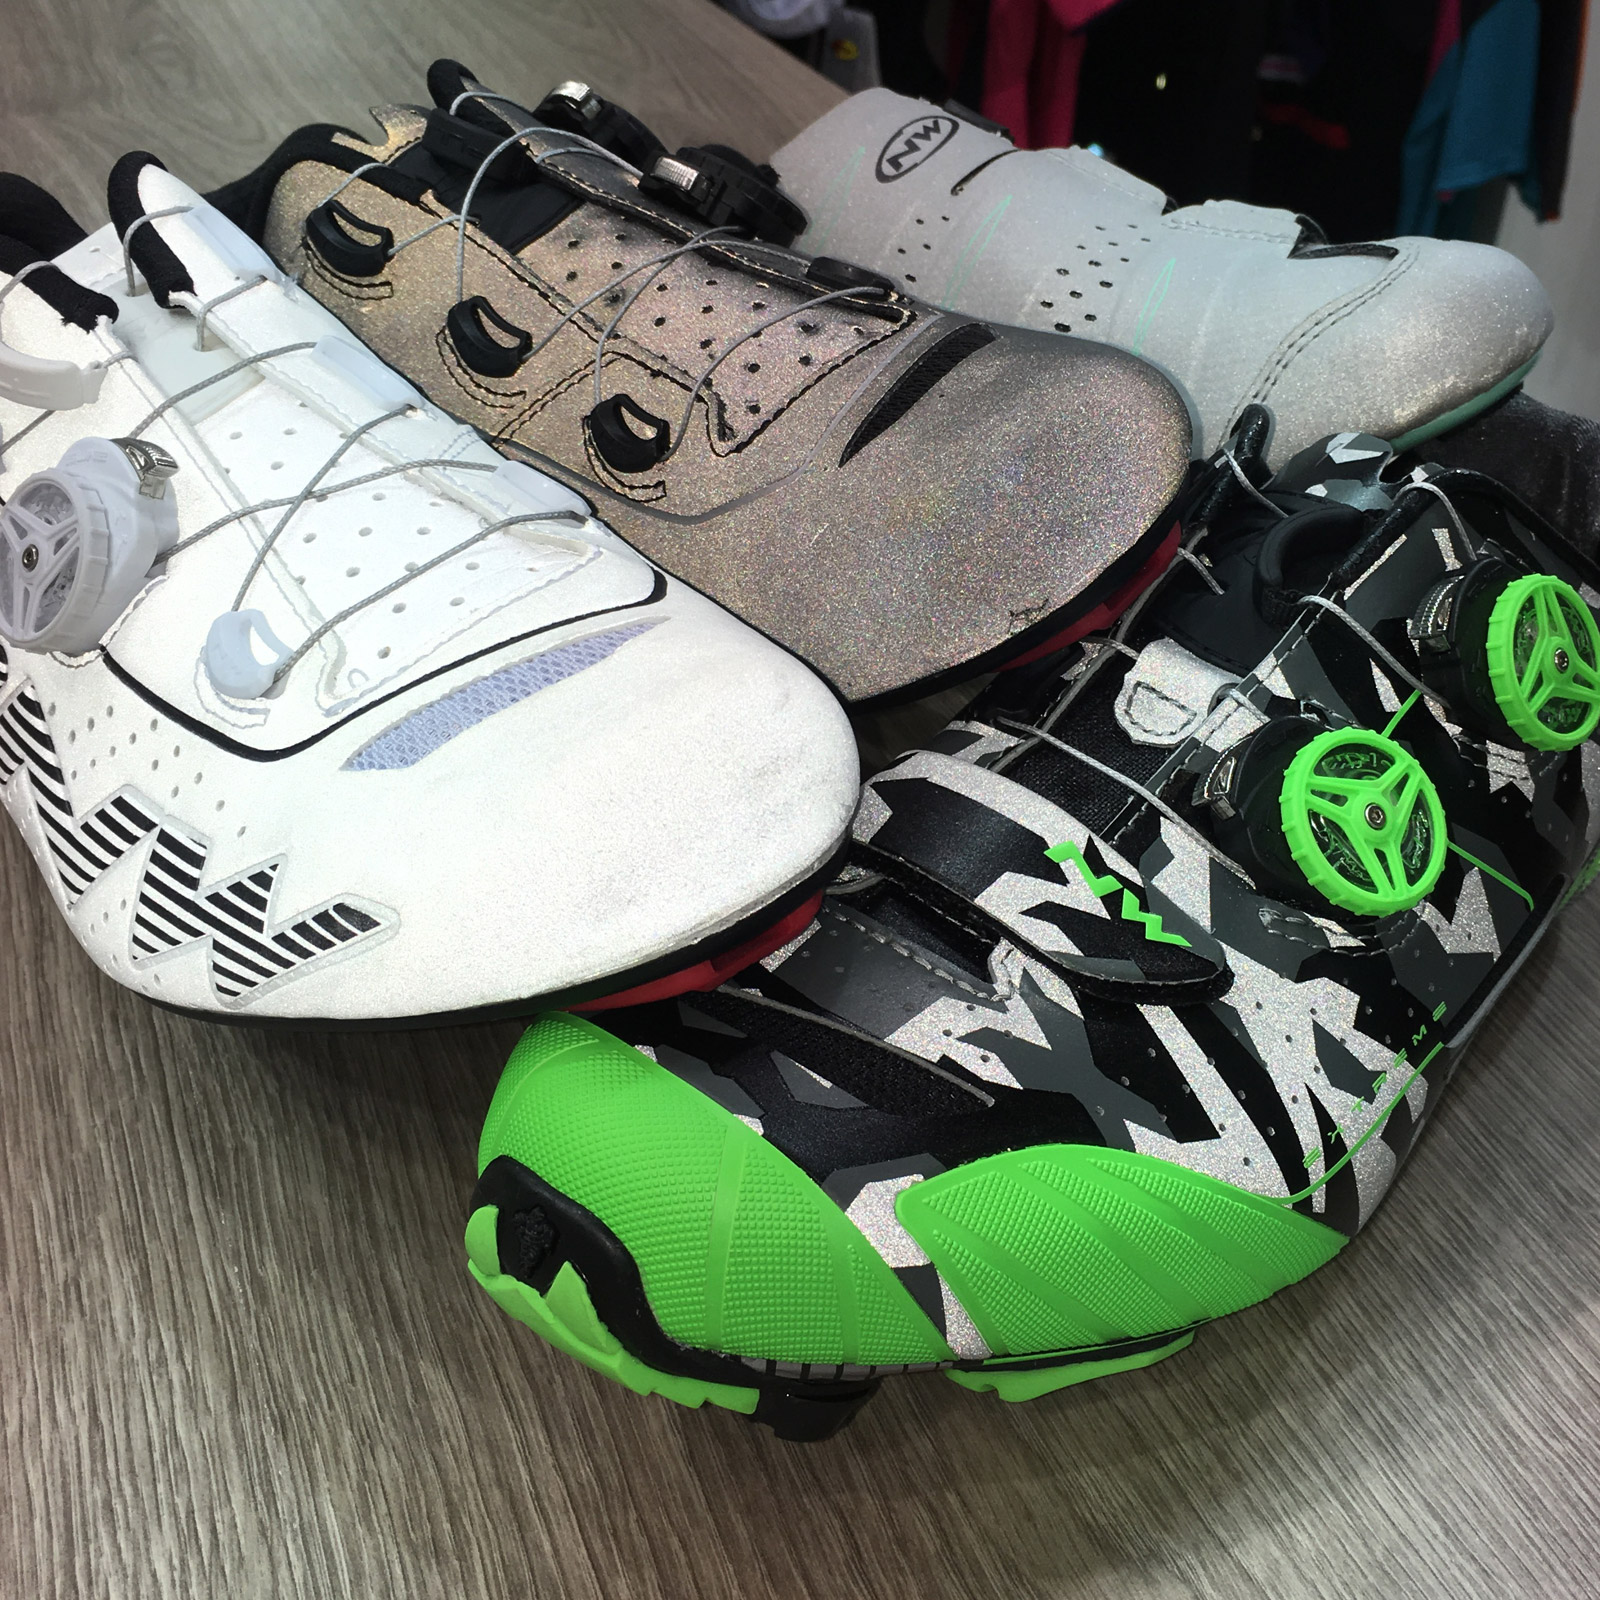 Northwave Extreme Aero Road Shoes Review